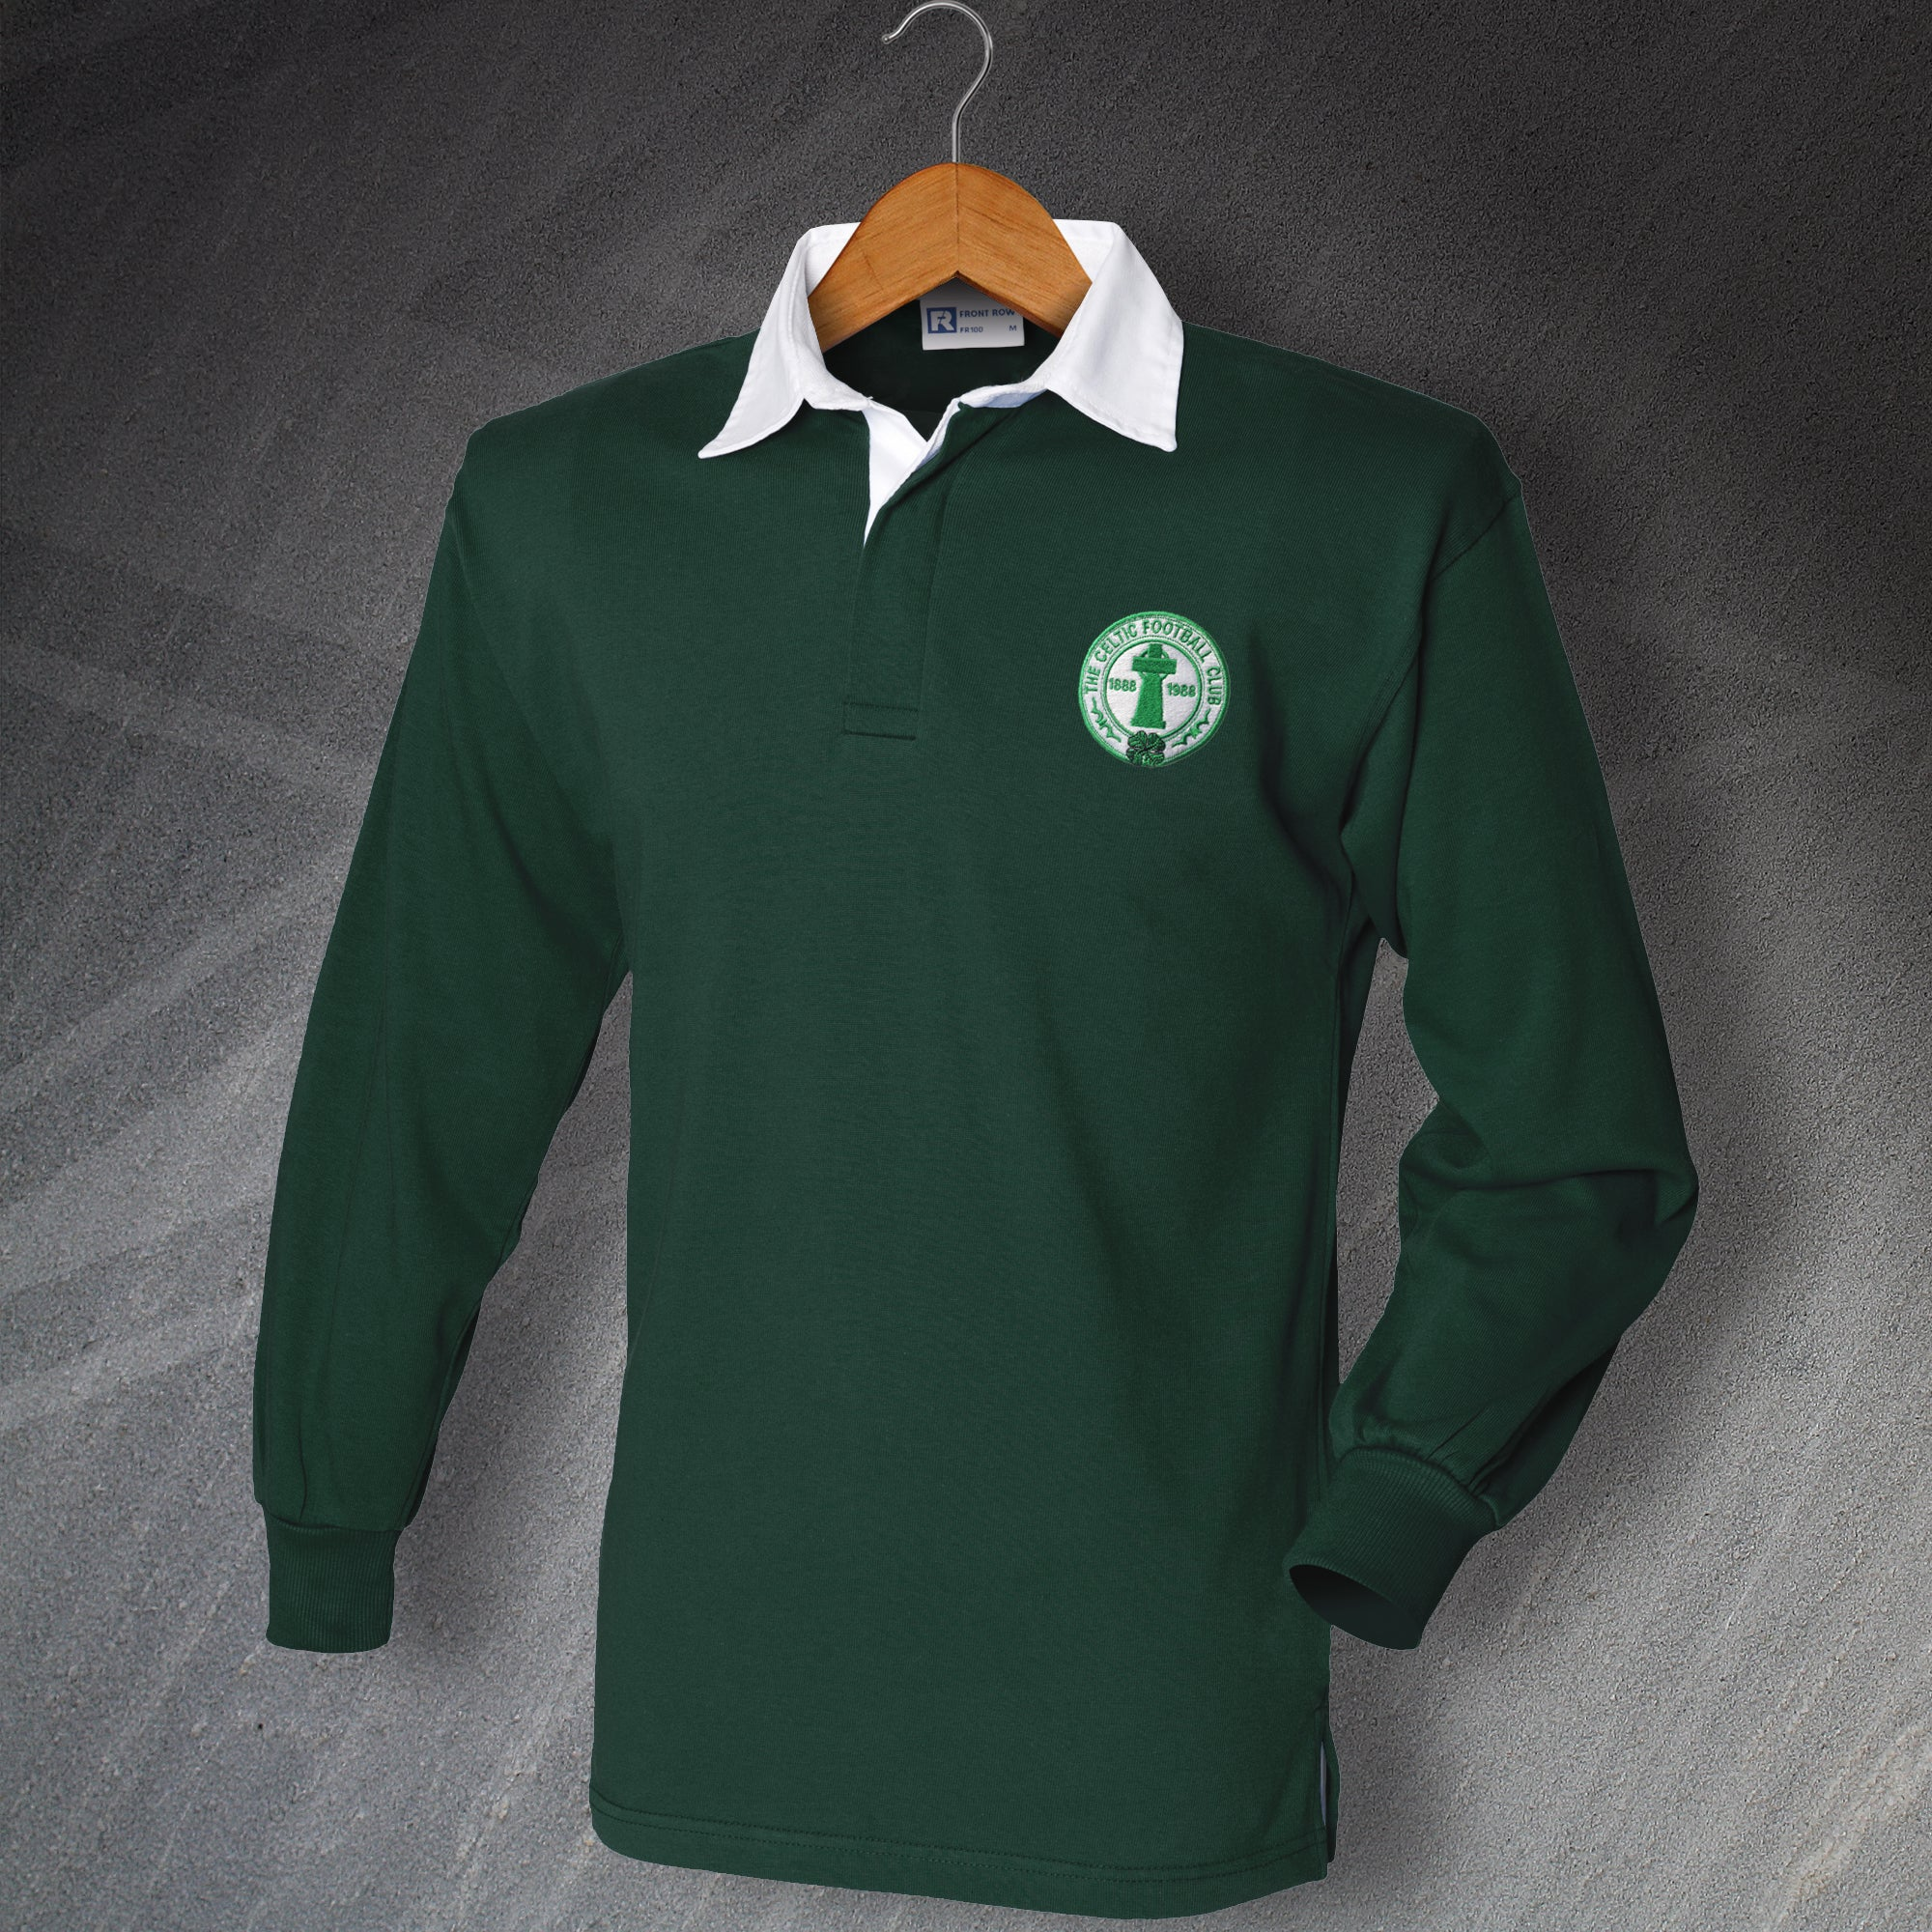 979f6e833 Embroidered Polo Shirts Glasgow - Cotswold Hire